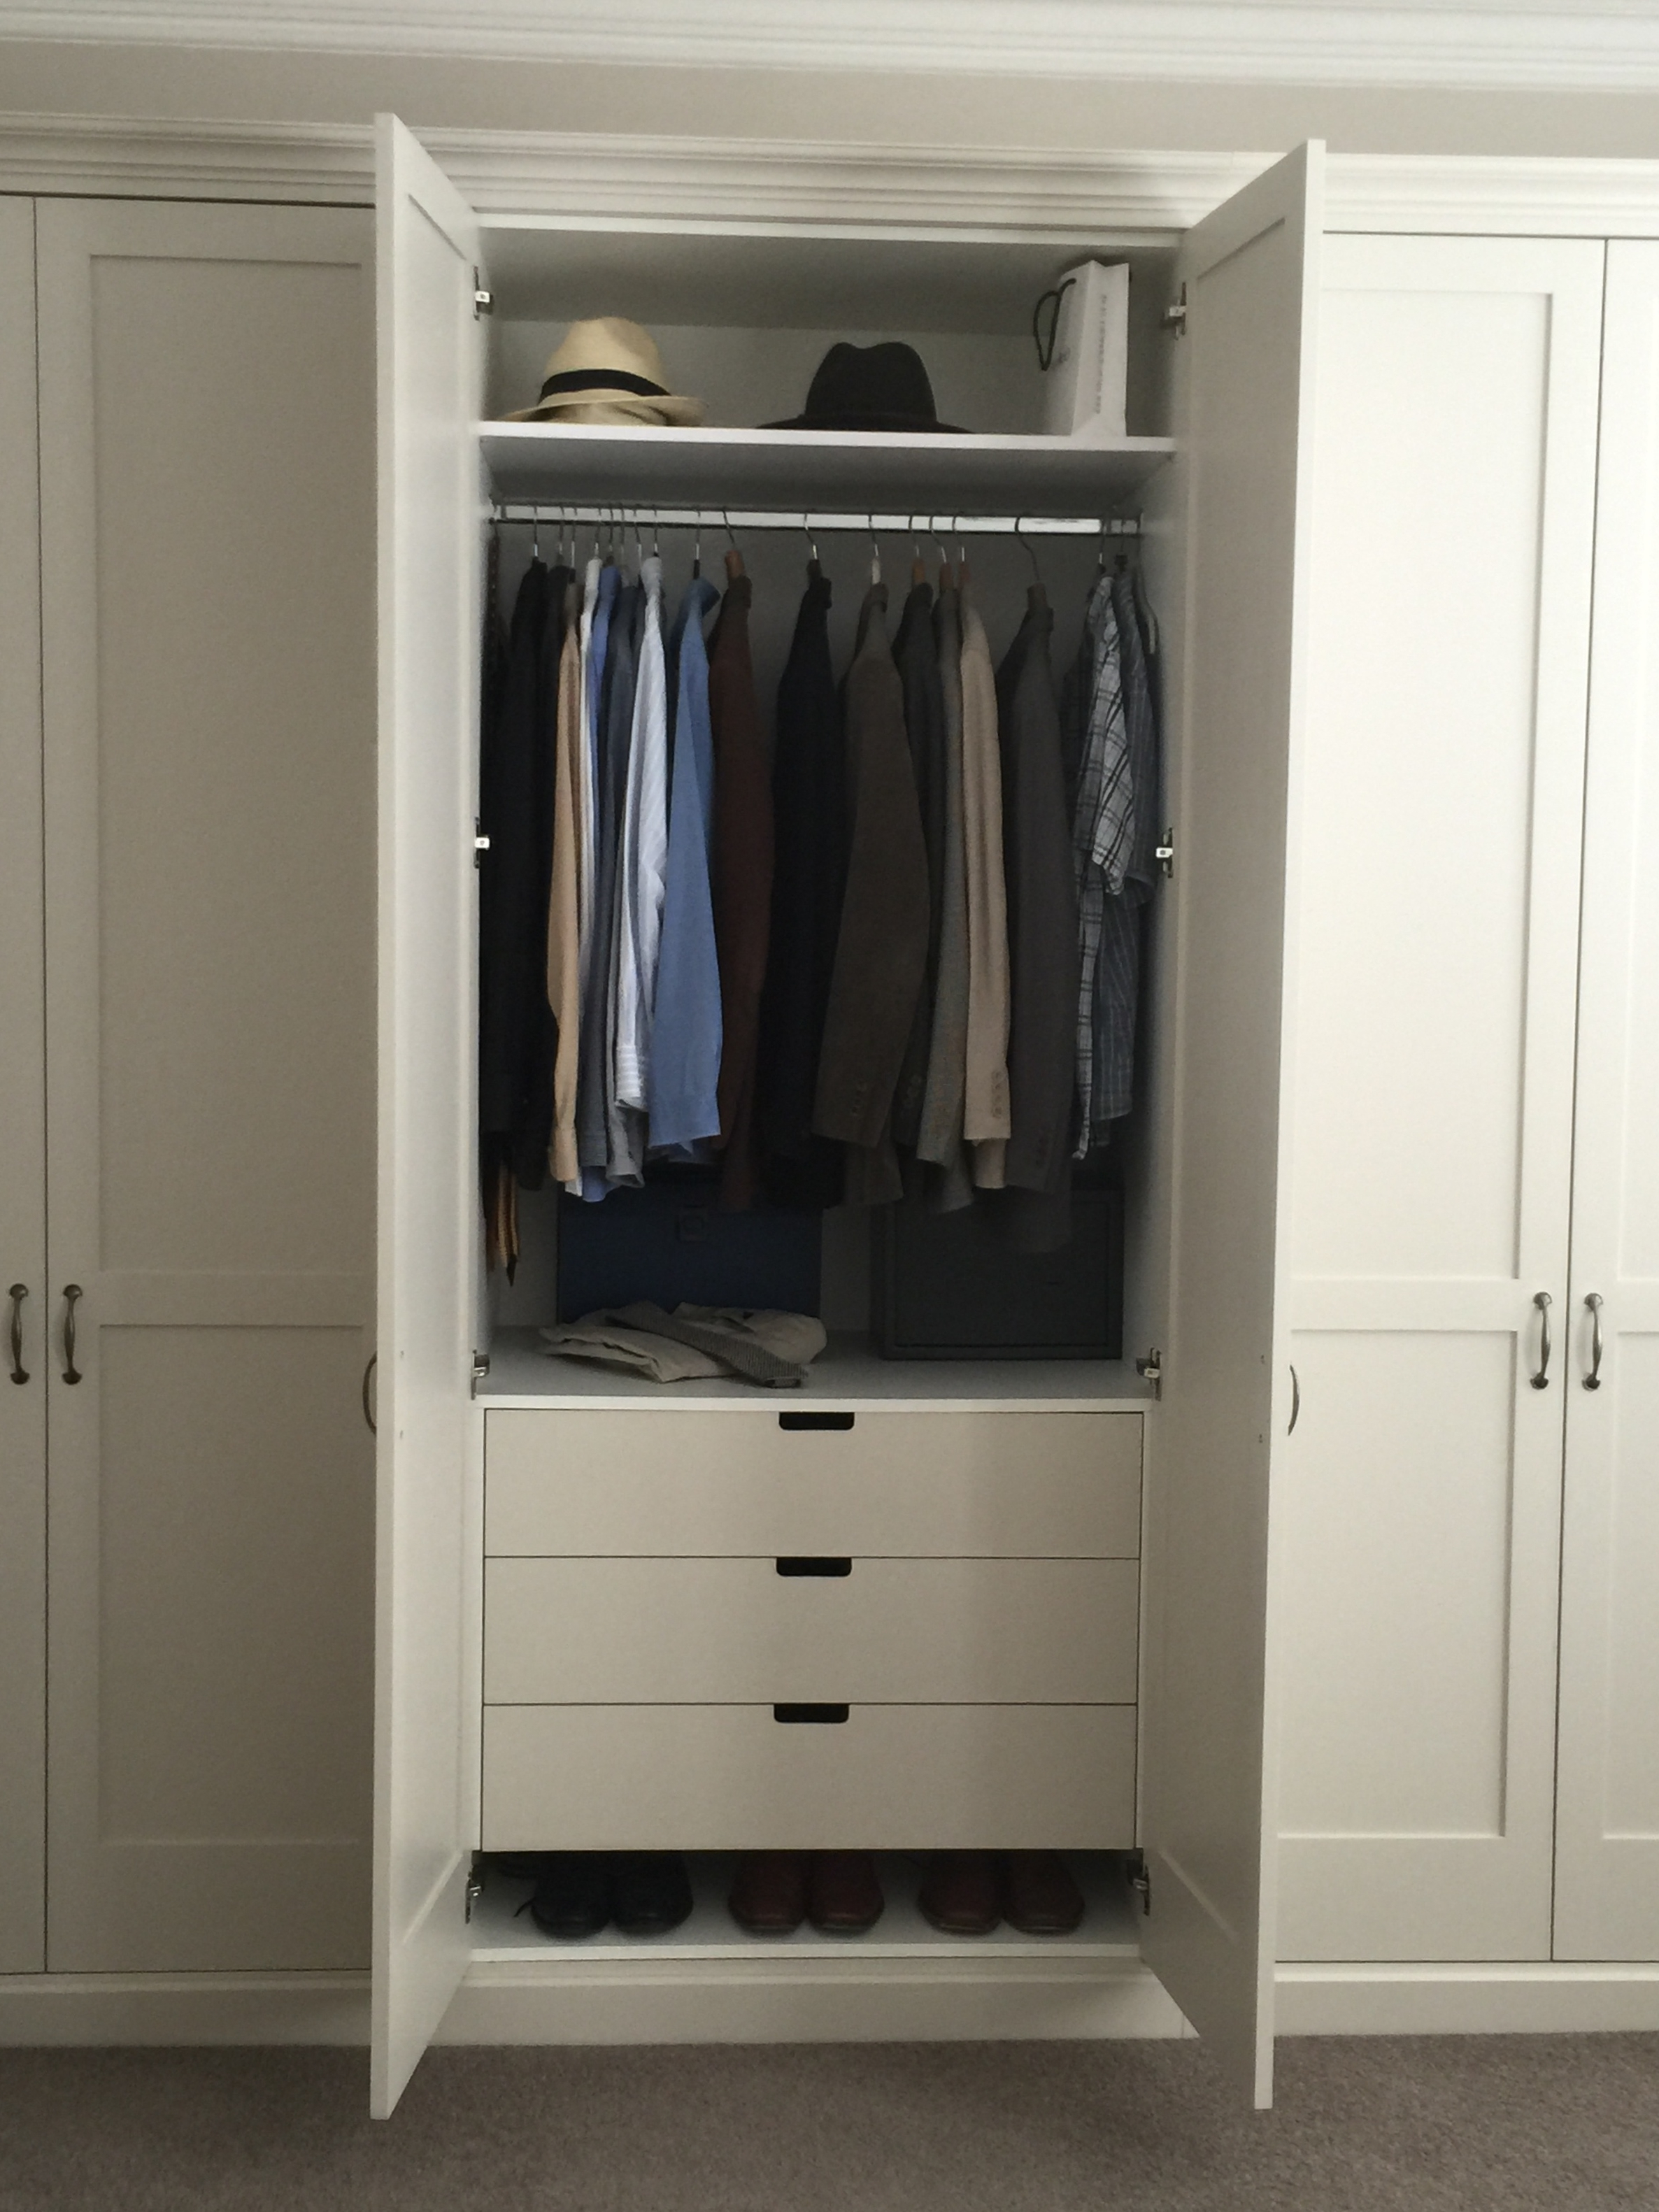 Fashionable Wardrobe With Drawers And Shelves Within Traditional Shaker Wardrobes, With Drawers Inside, Shelves And (View 4 of 15)